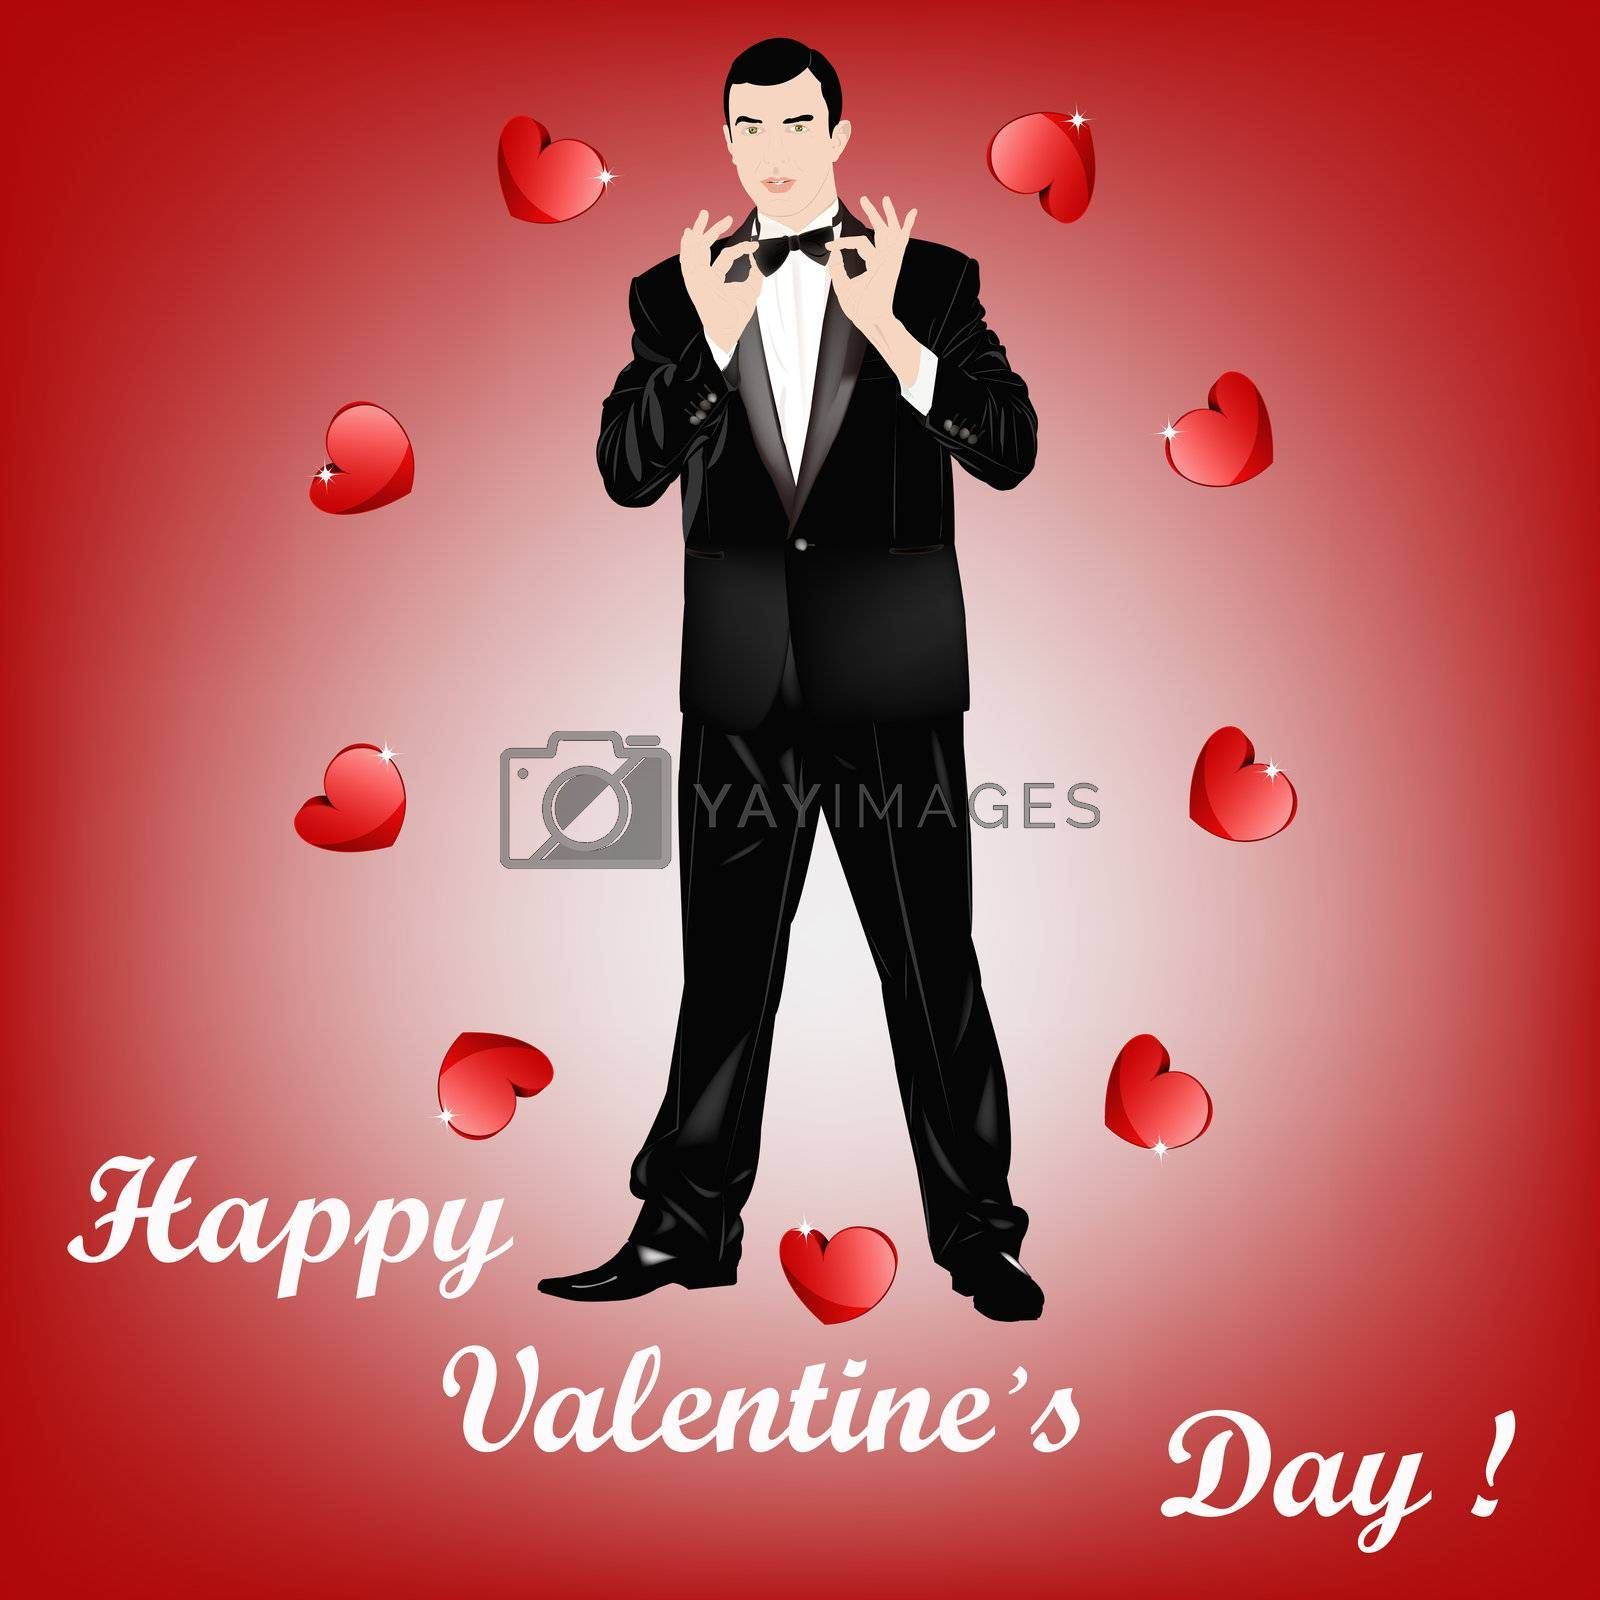 The Valentine's day gives happiness and love and a soul youth